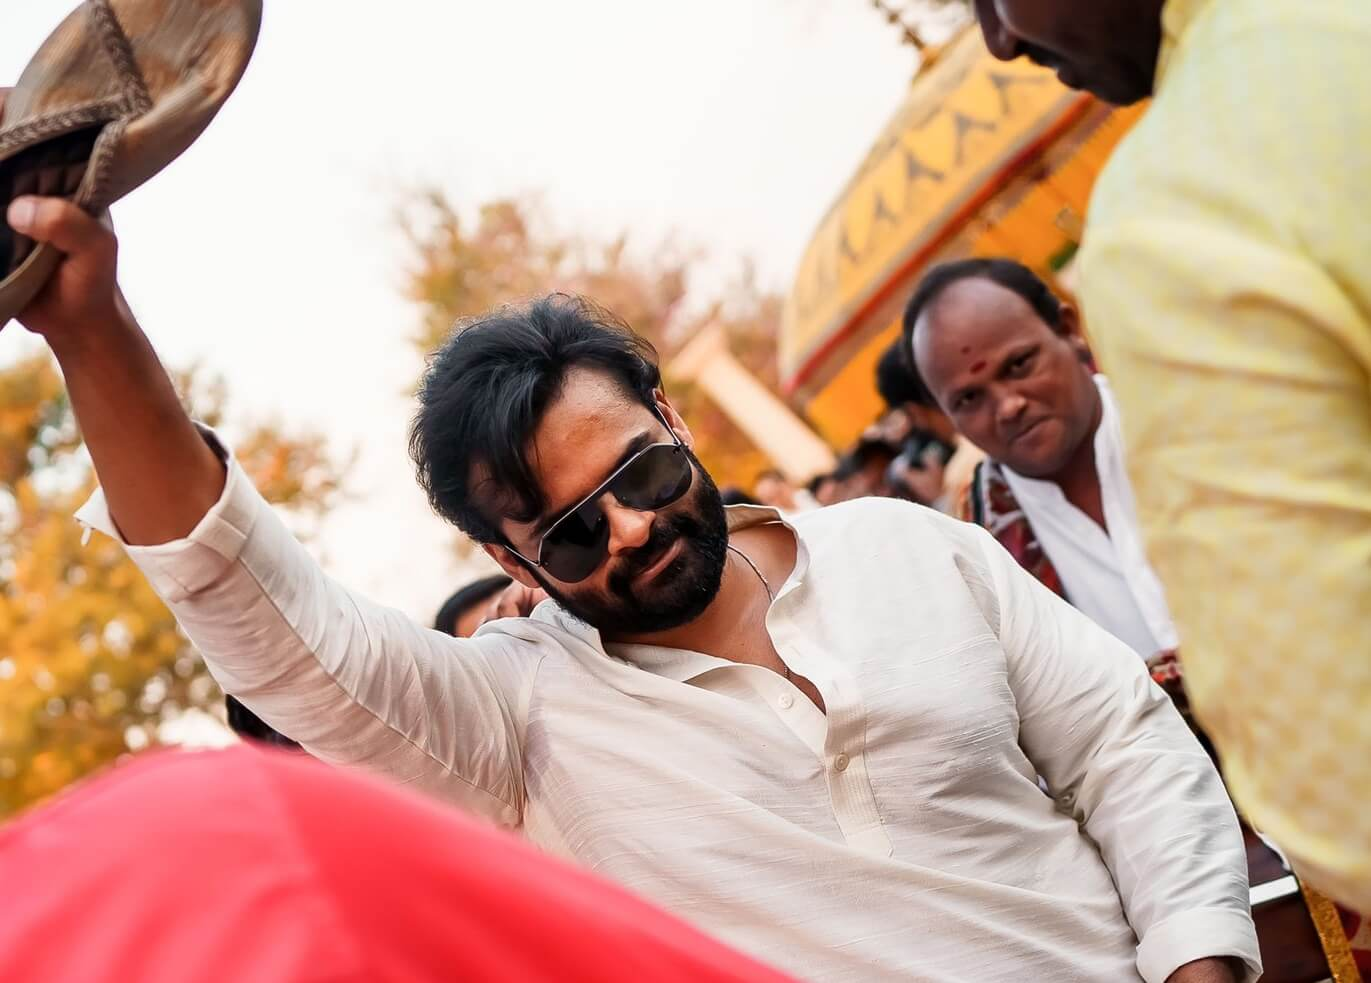 Sai Dharam Tej says he is in no hurry to get married